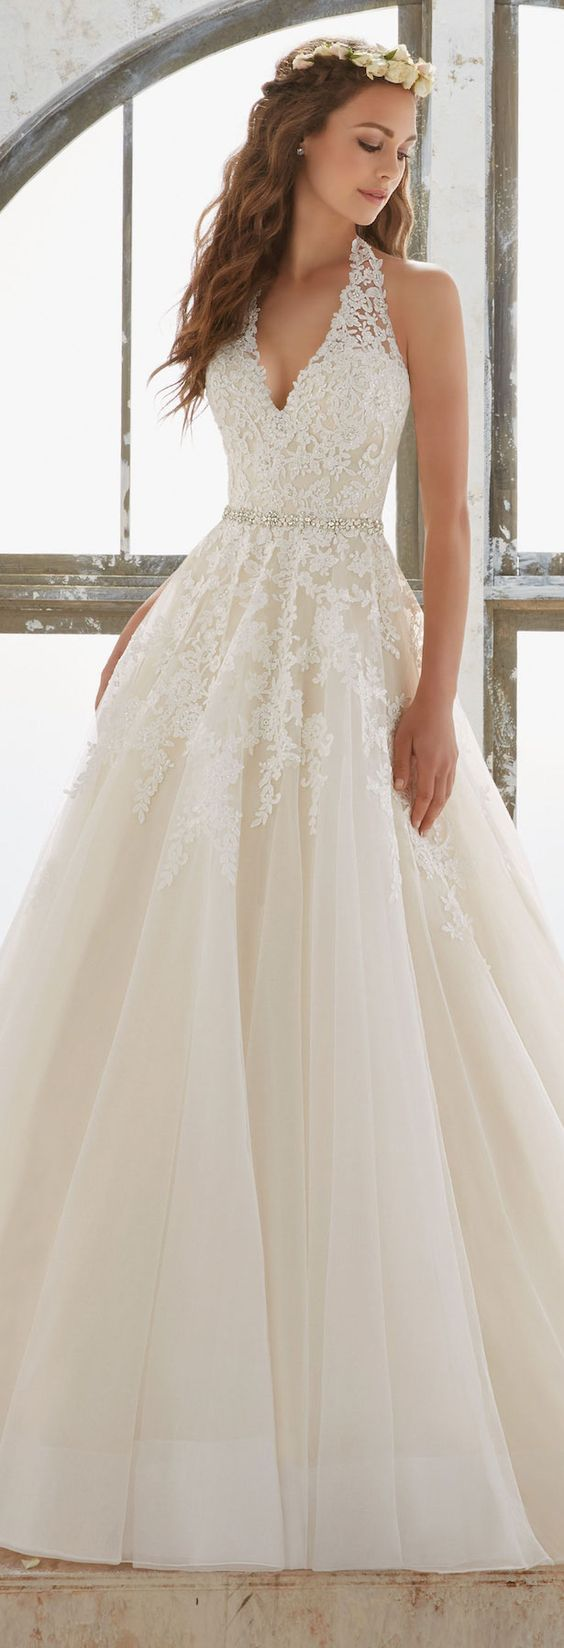 Wedding Dress Inspiration Mori Lee